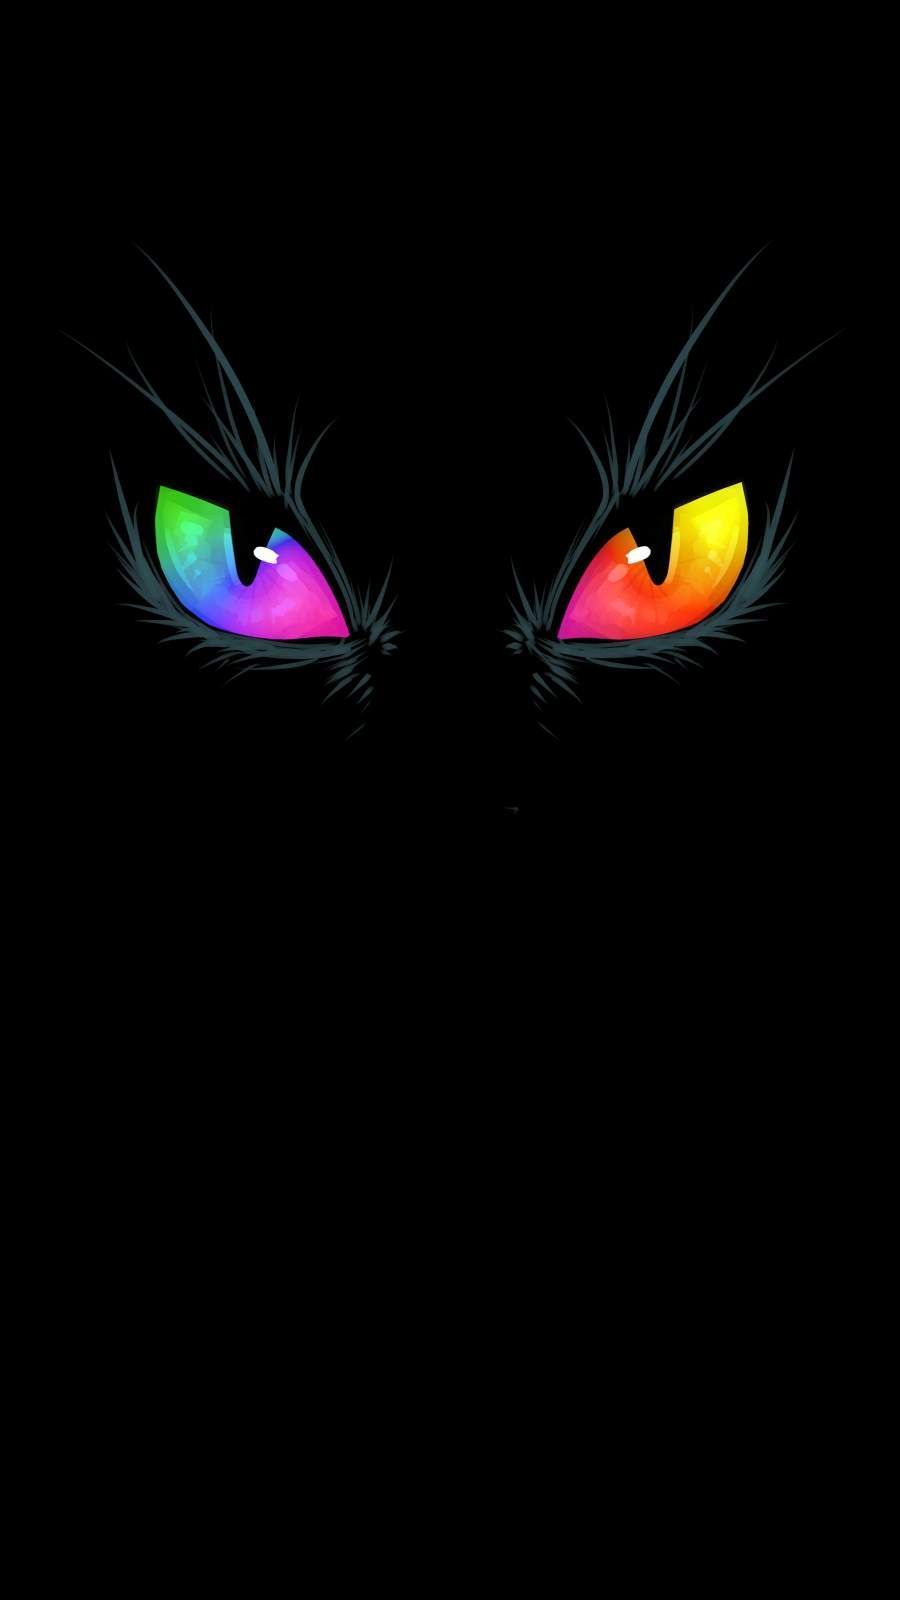 Dark Eyes Iphone Wallpaper Android Wallpaper Black Iphone Wallpaper Themes Eyes Wallpaper